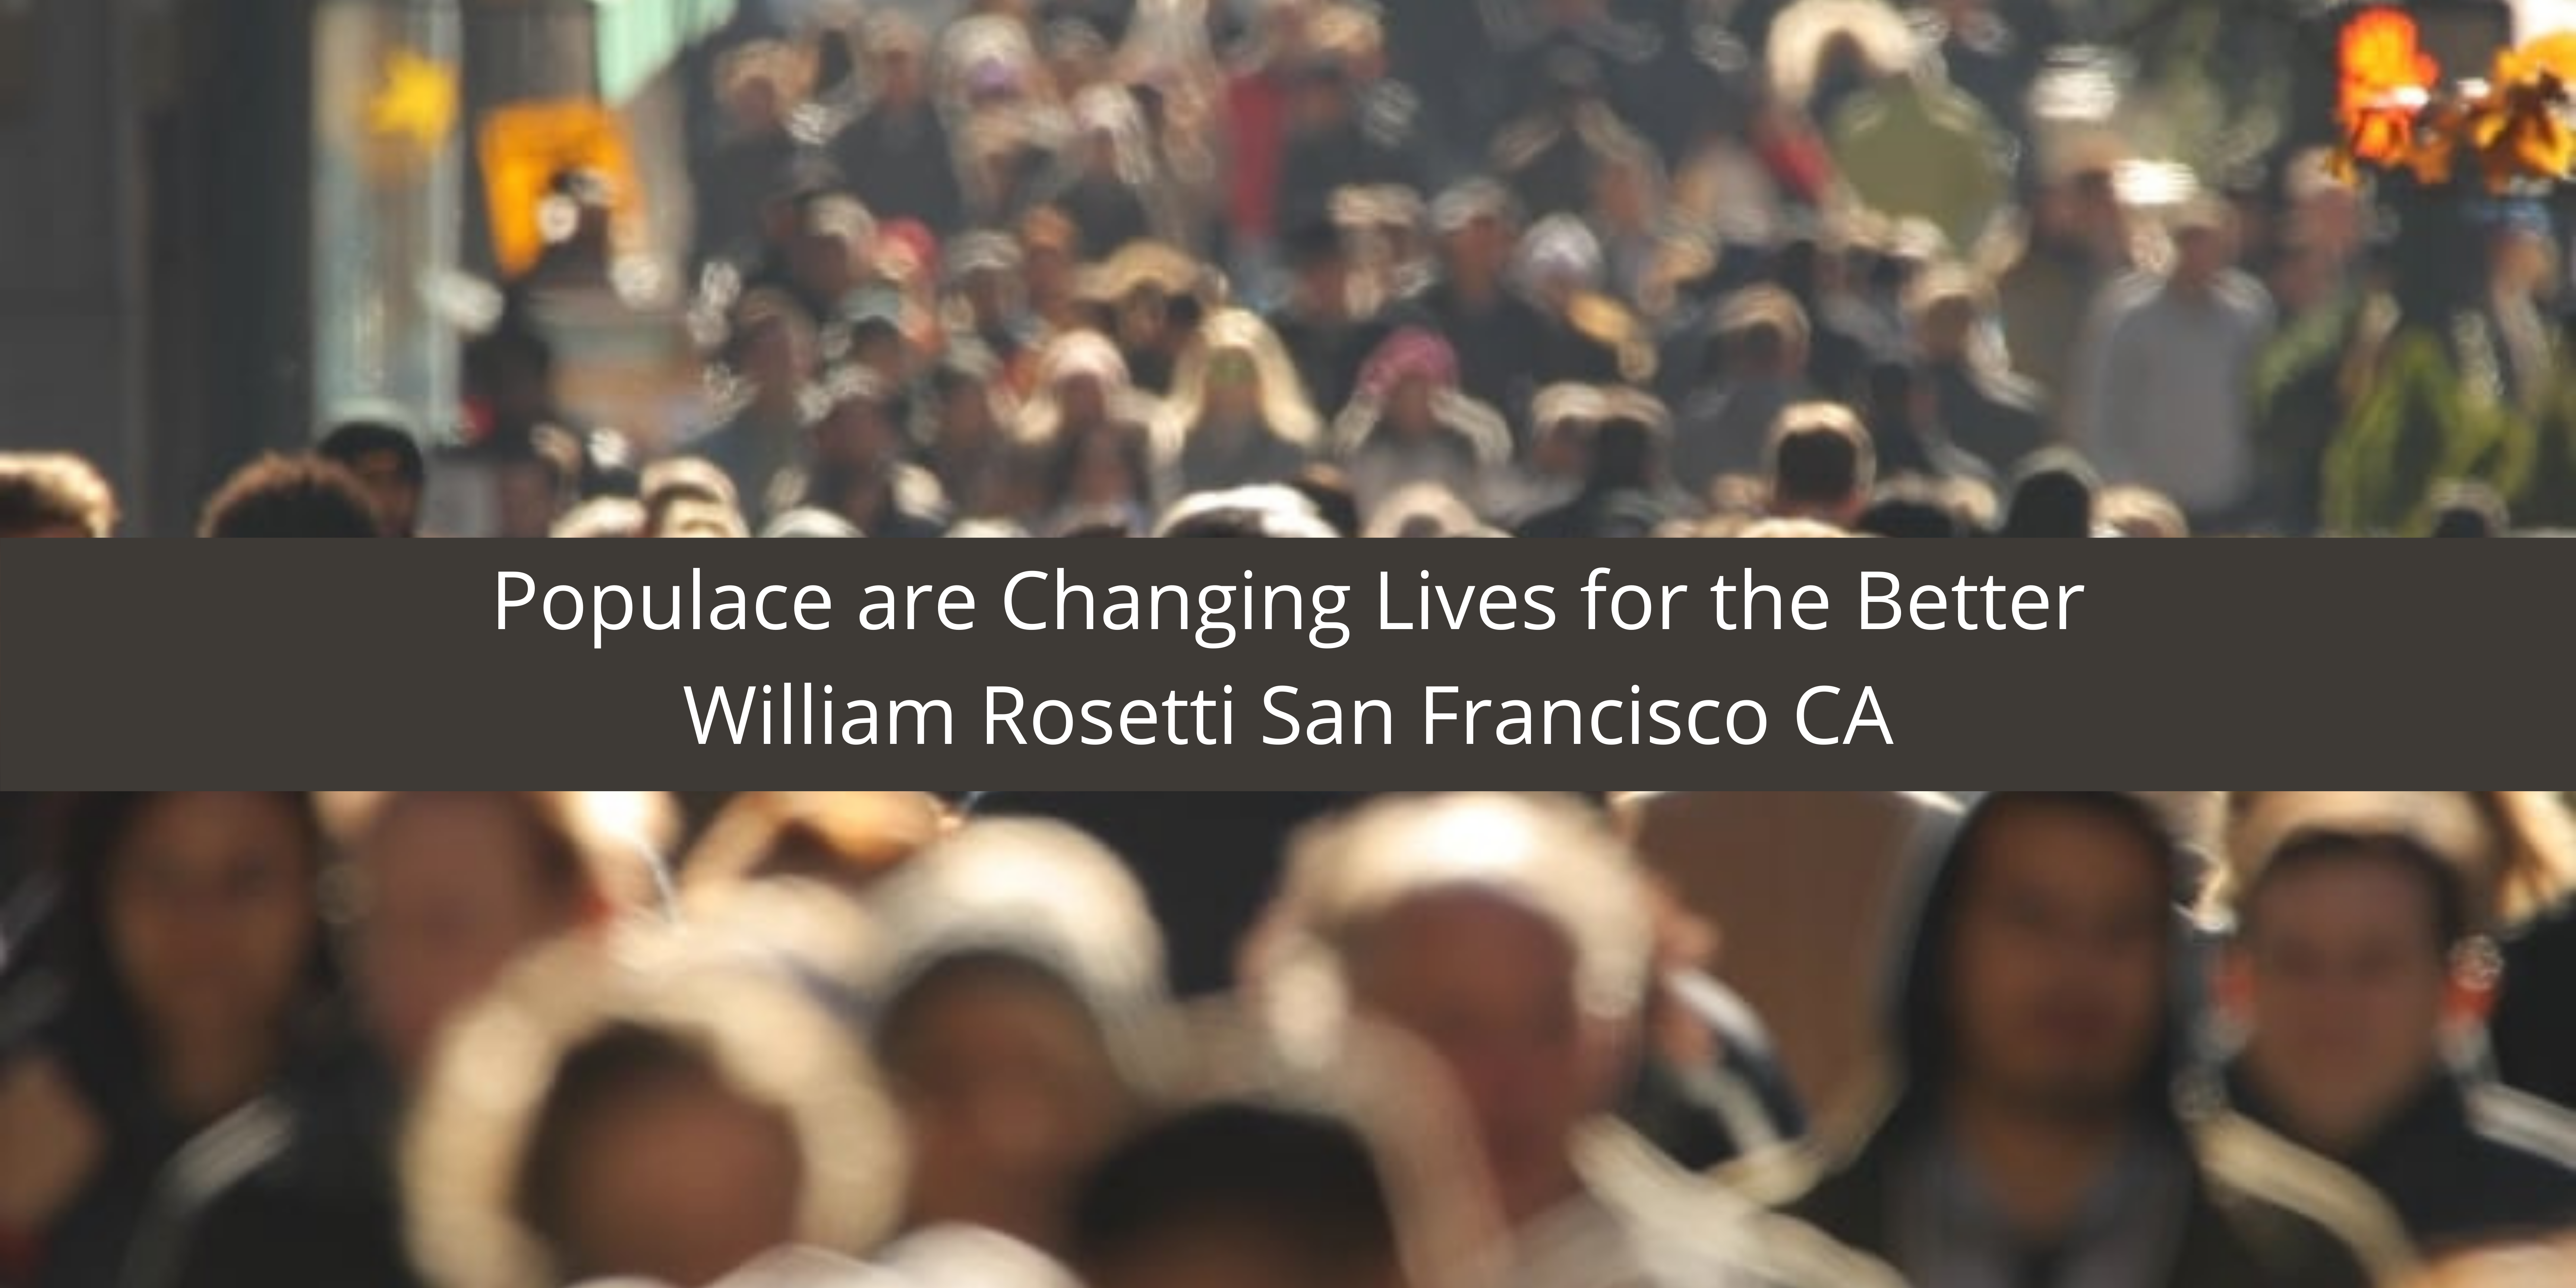 William Rosetti of San Francisco CA and Populace are Changing Lives for the Better